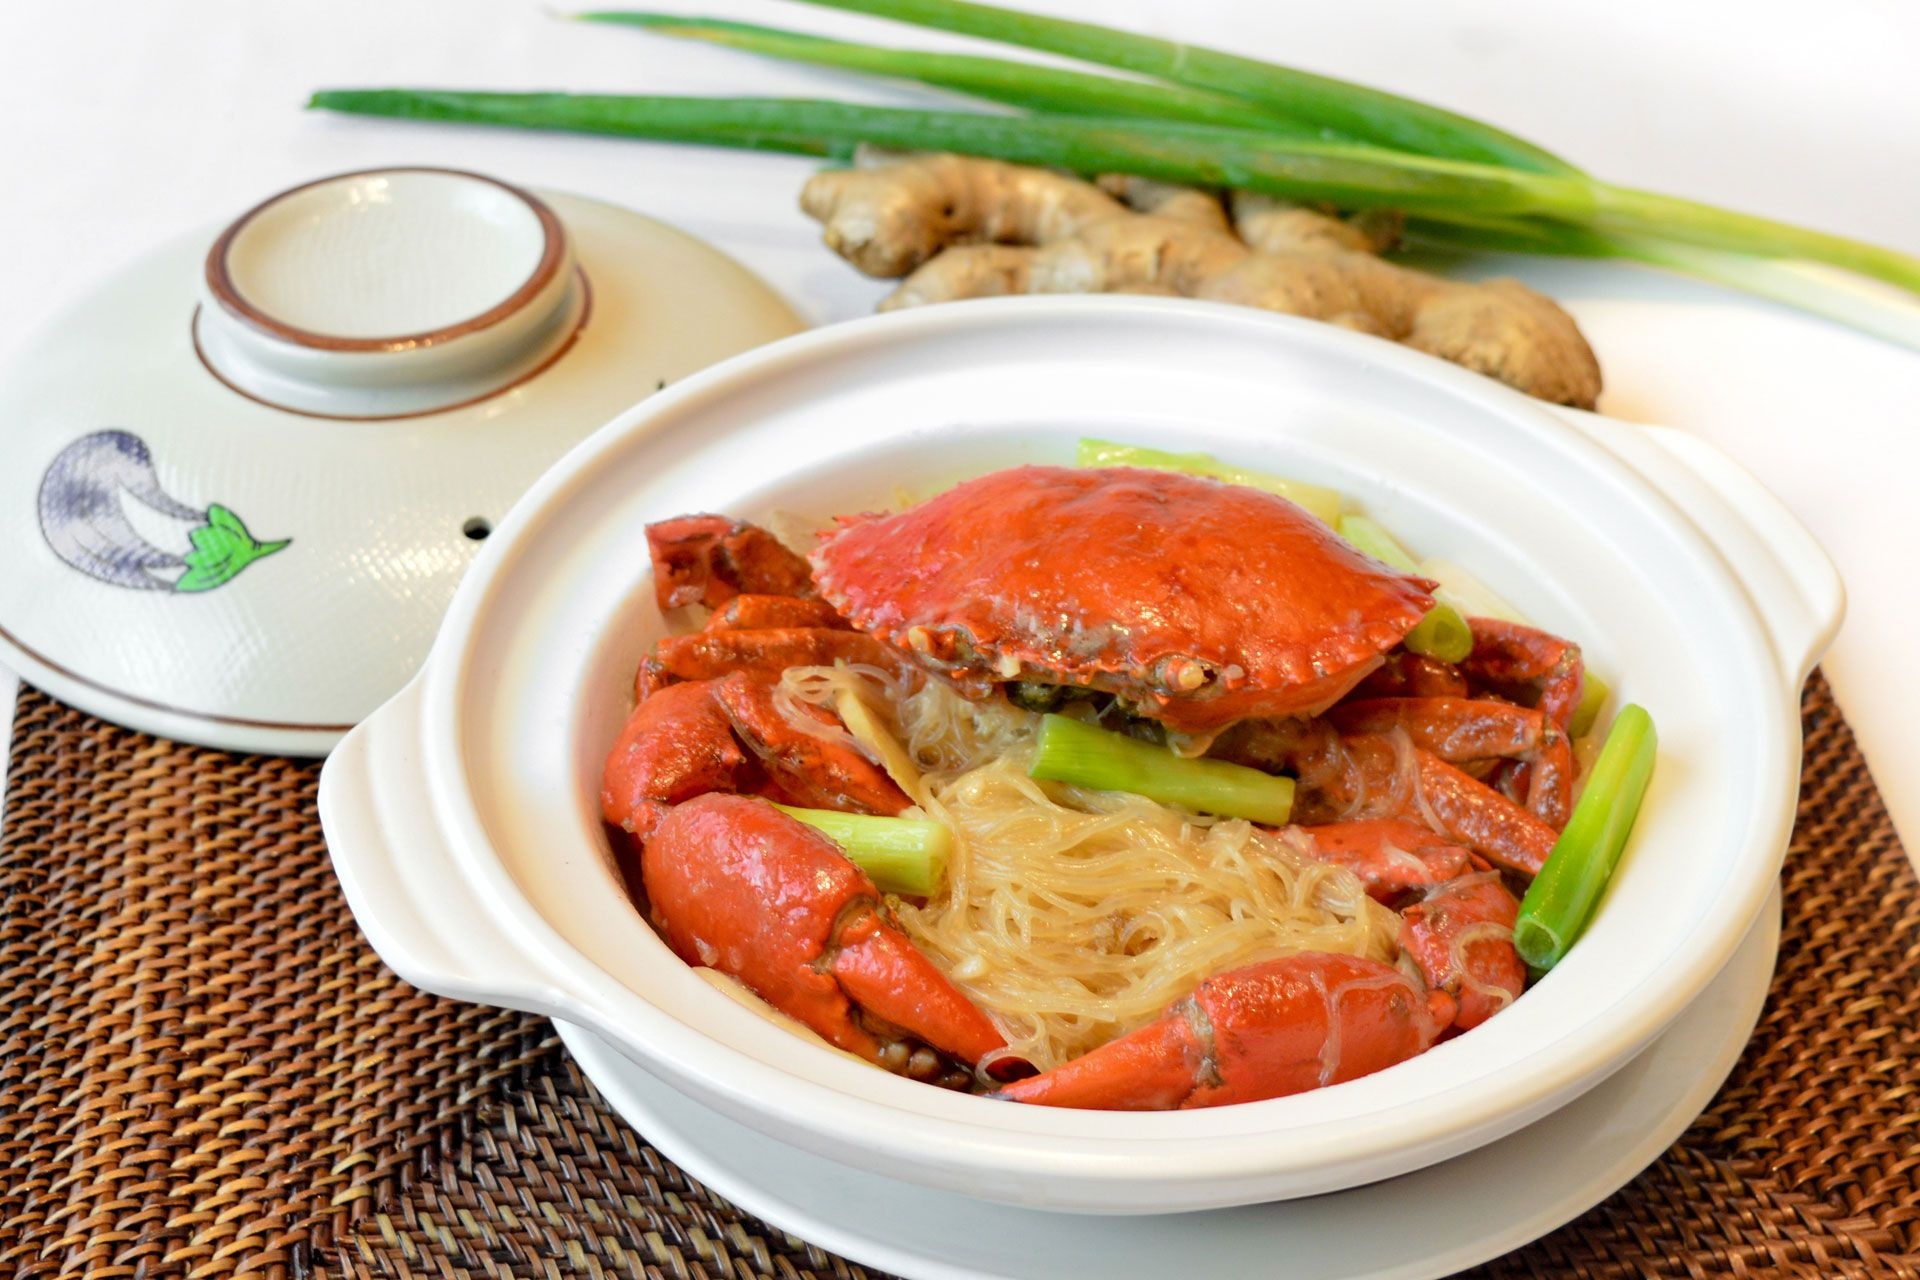 XIU Fine Cantonese Dining's Christmas Meals